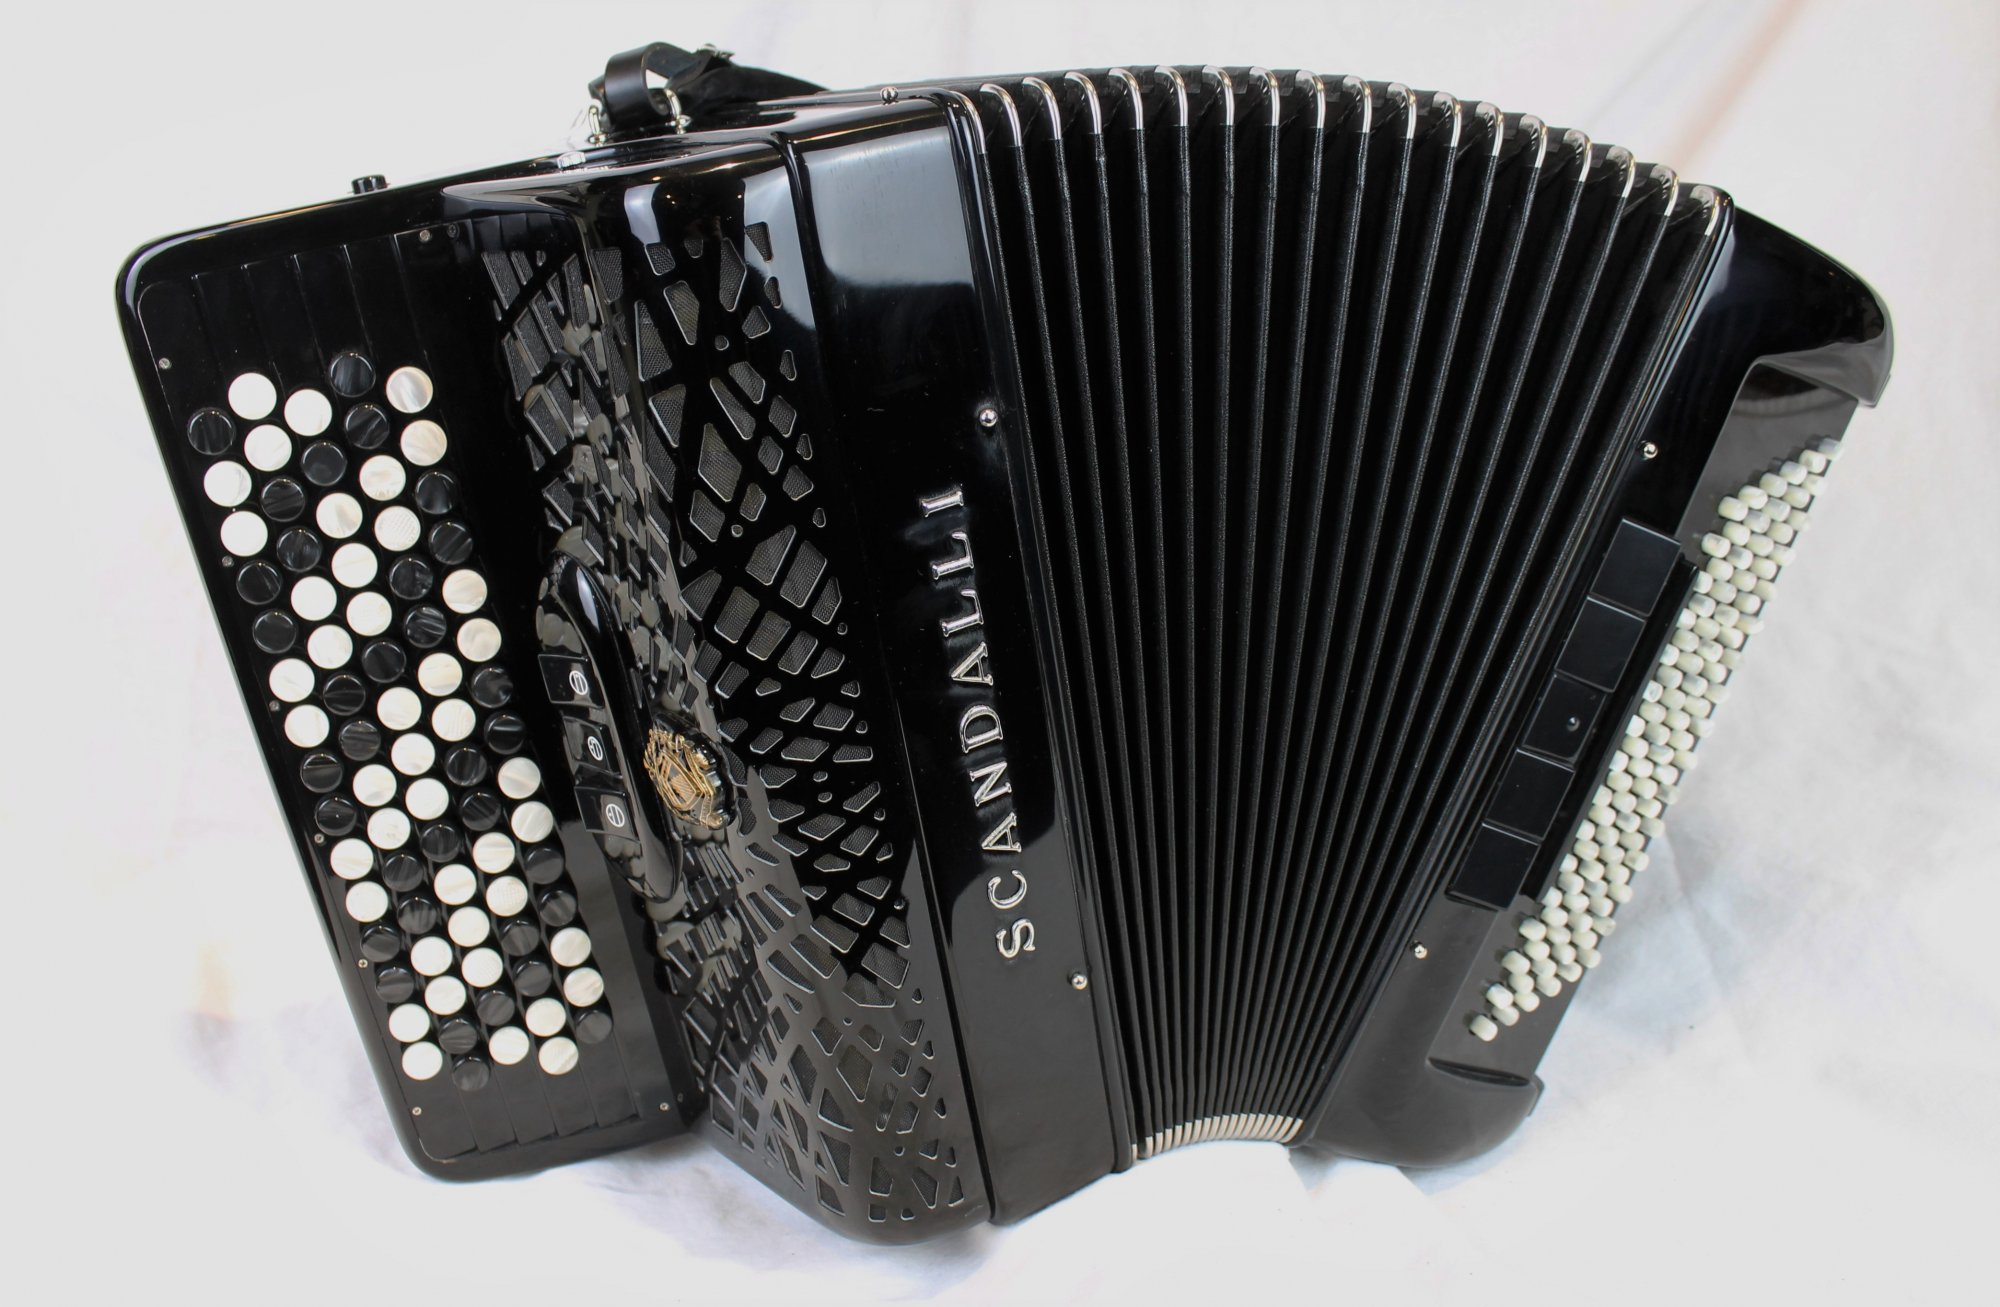 NEW Black Scandalli Conservatorio 242 Chromatic Button Accordion LM 77 96